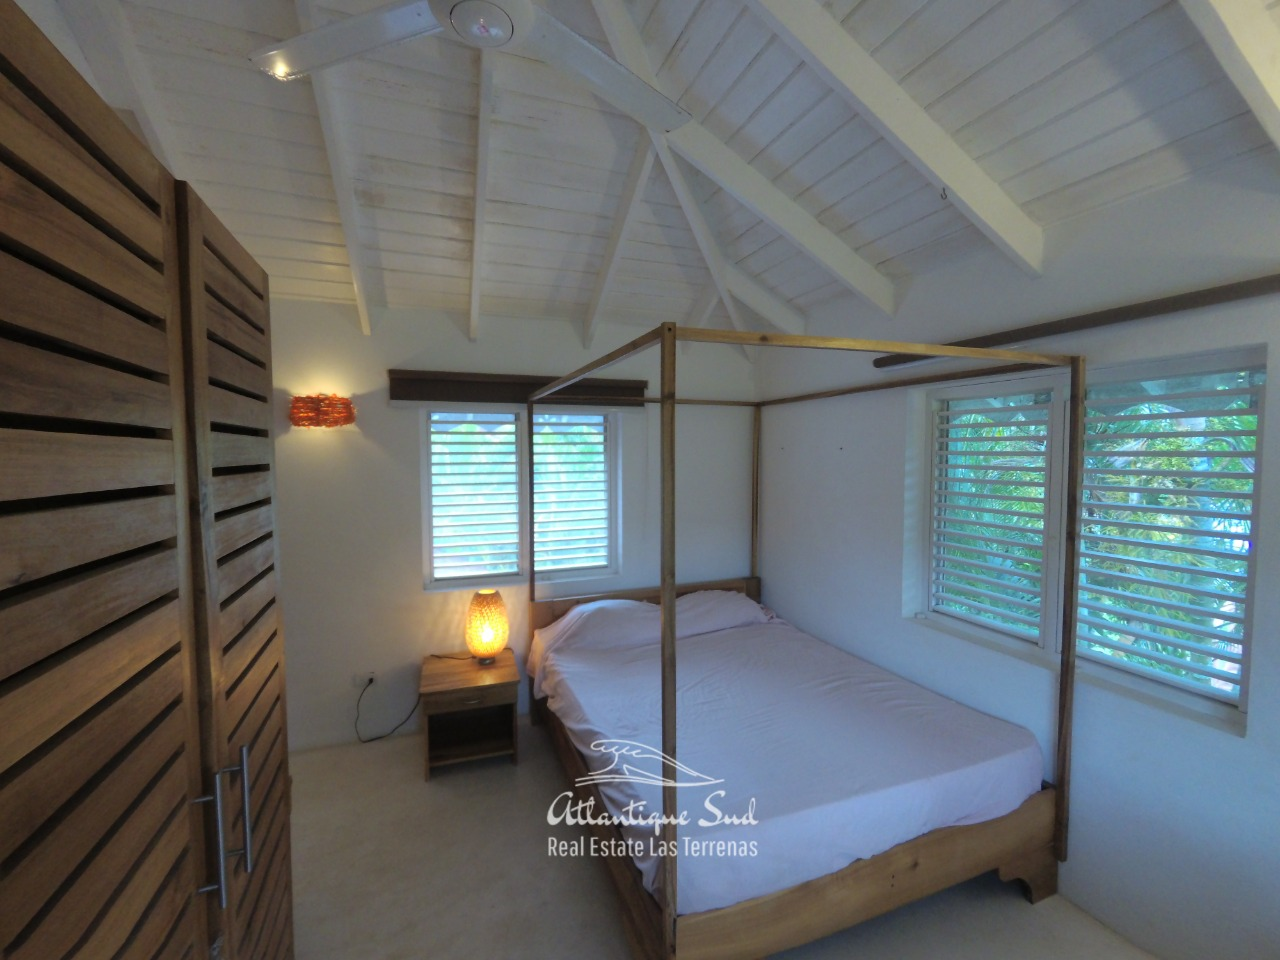 Villa for sale steps from the beach in las terrenas 4.jpeg